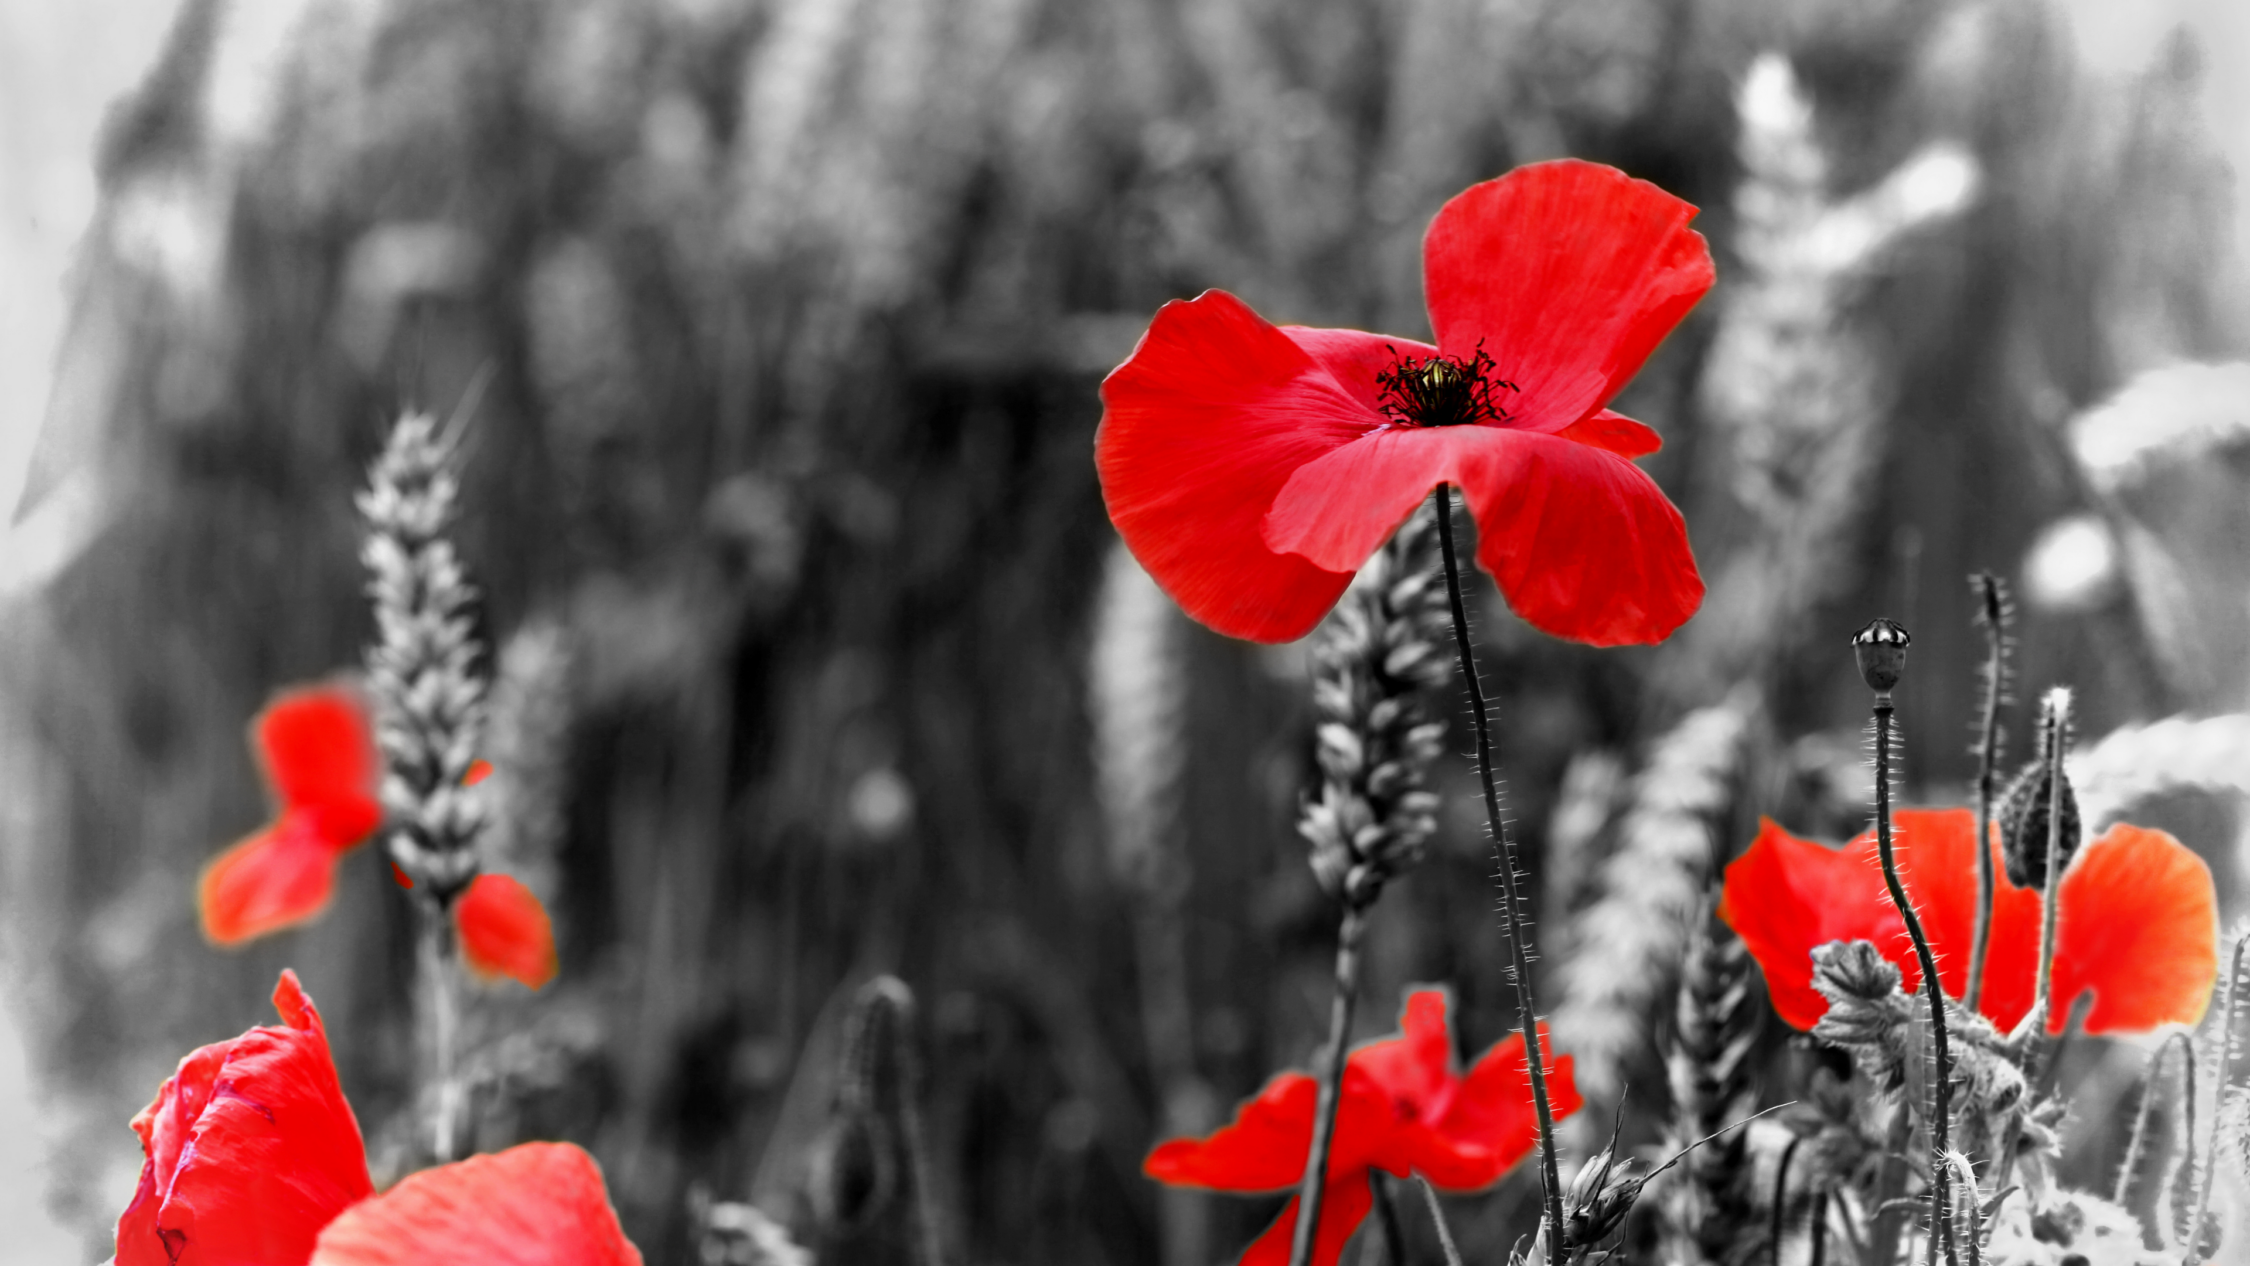 Red poppies. Remembrance Day